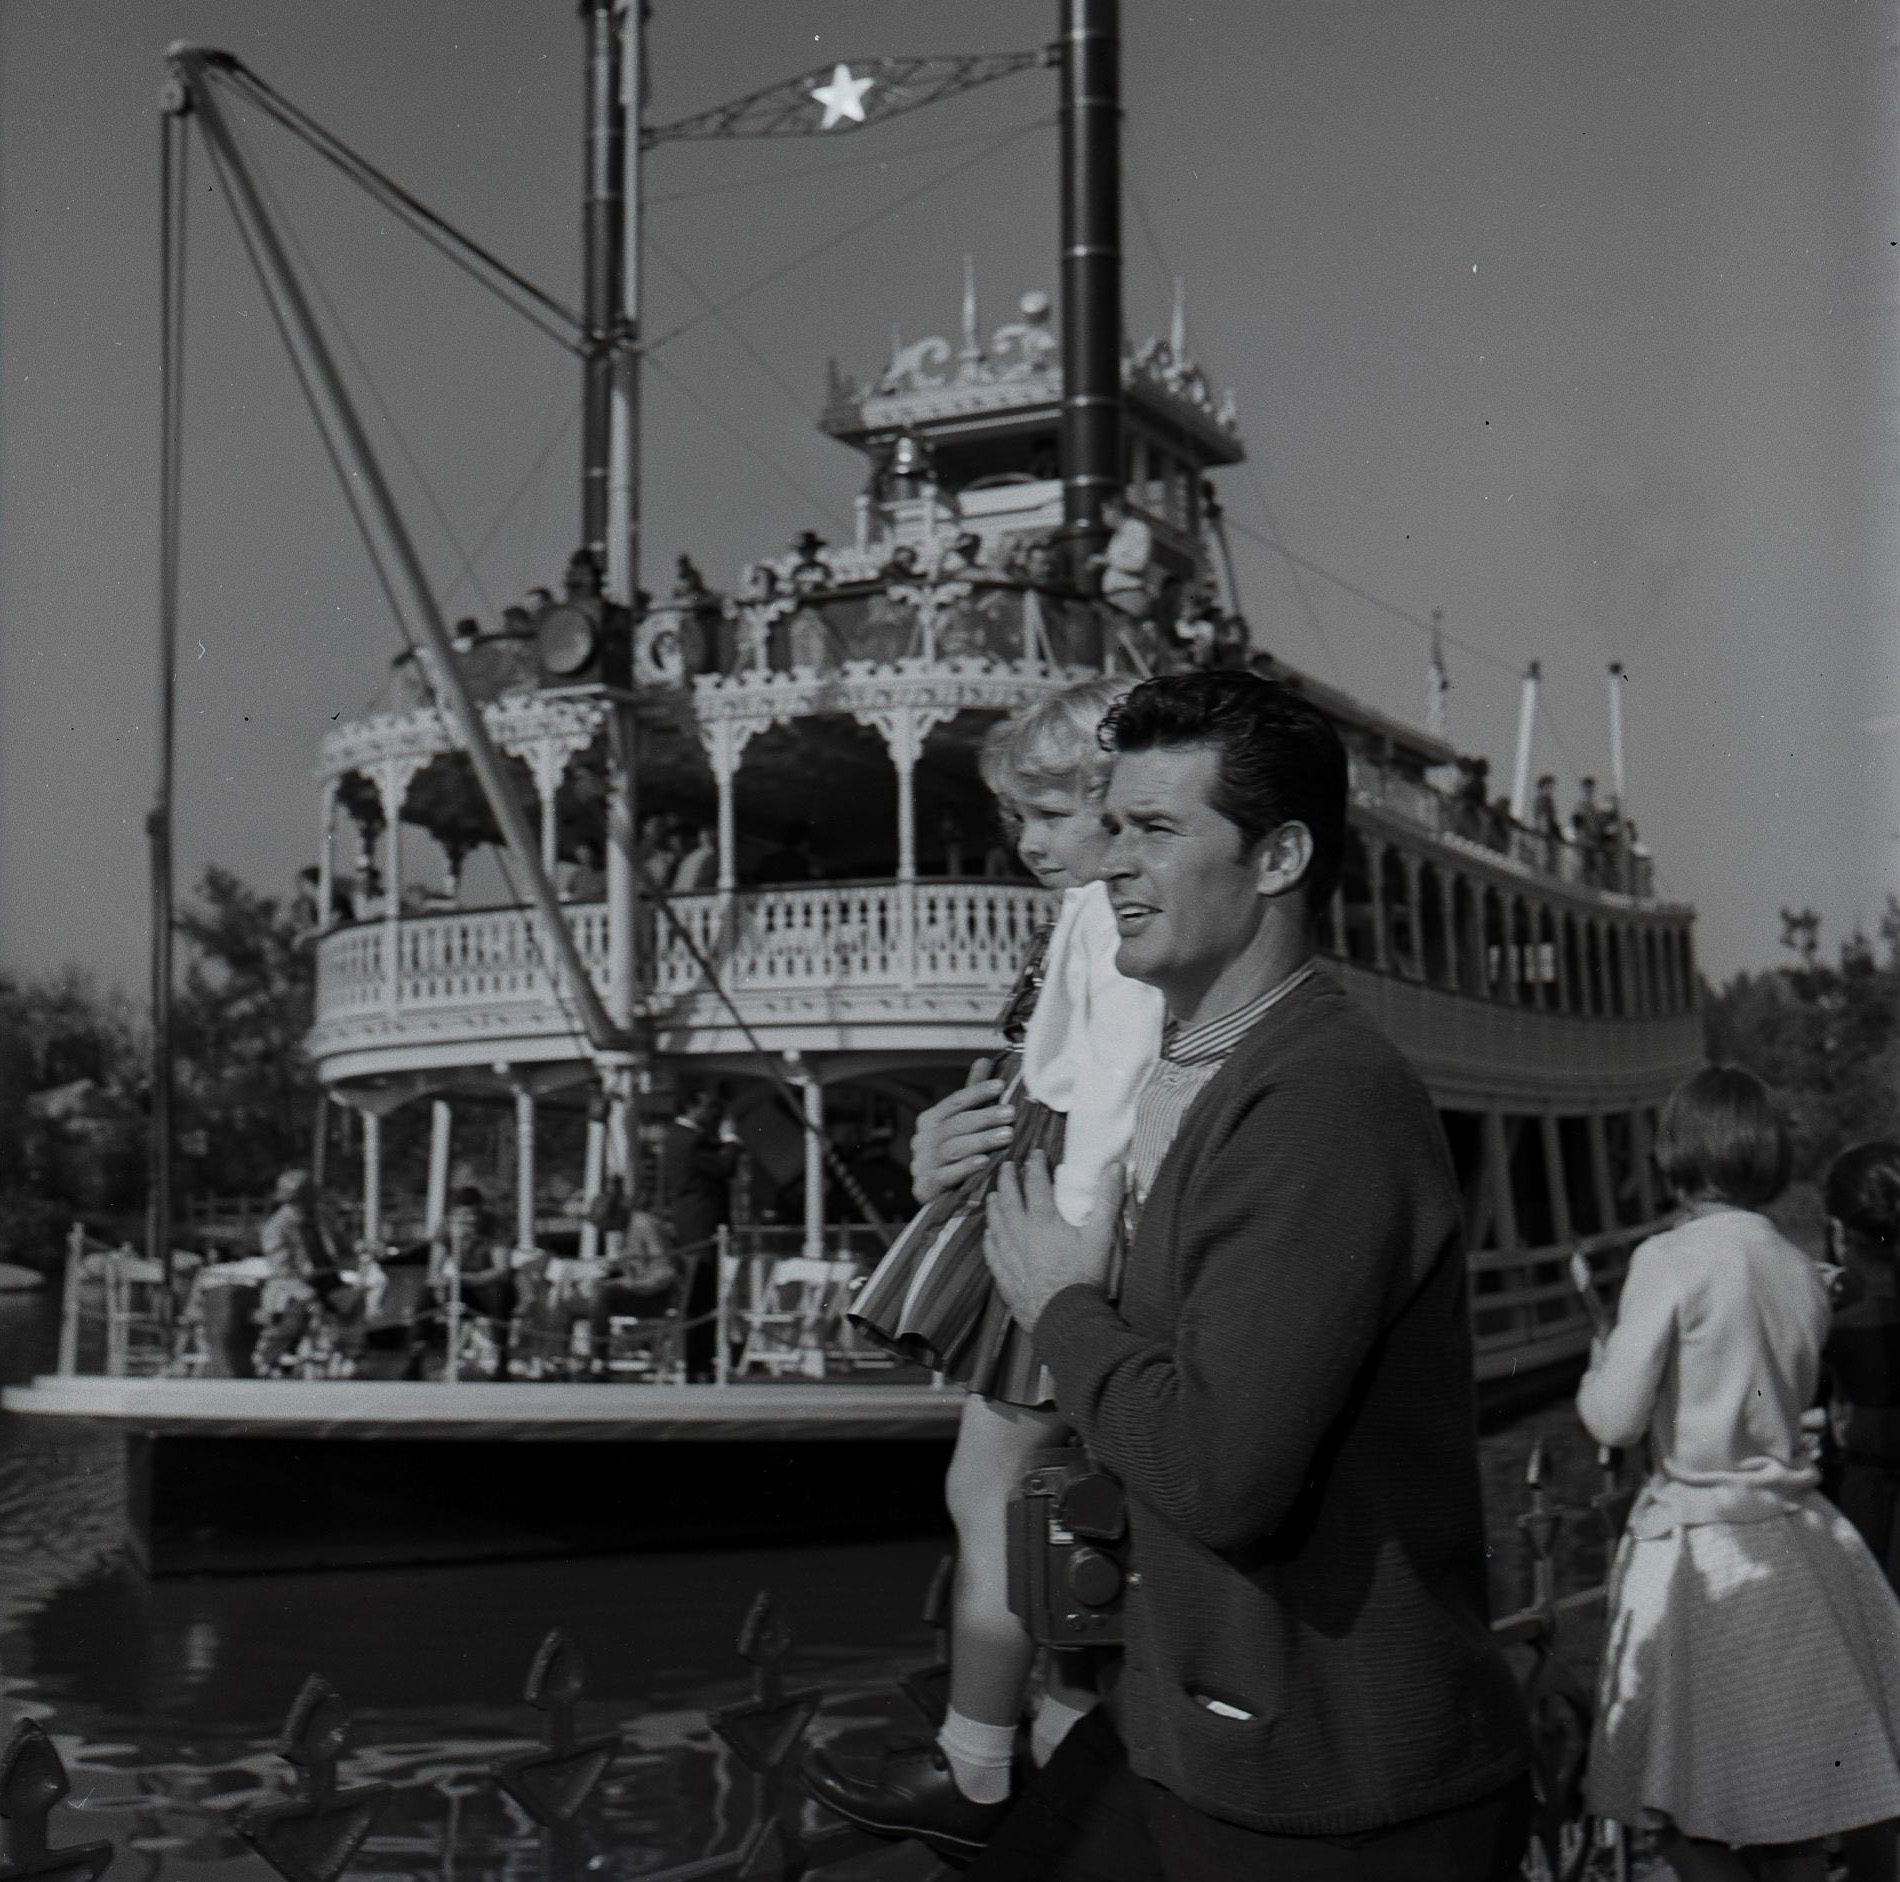 Slide 12 of 33: MAVERICK - James Garner and Family at Disneyland - Shoot Date: December 12, 1957. (Photo by ABC Photo Archives/ABC via Getty Images) JAMES GARNER WITH DONNA MONROE, FRIEND OF STEPDAUGHTER KIM